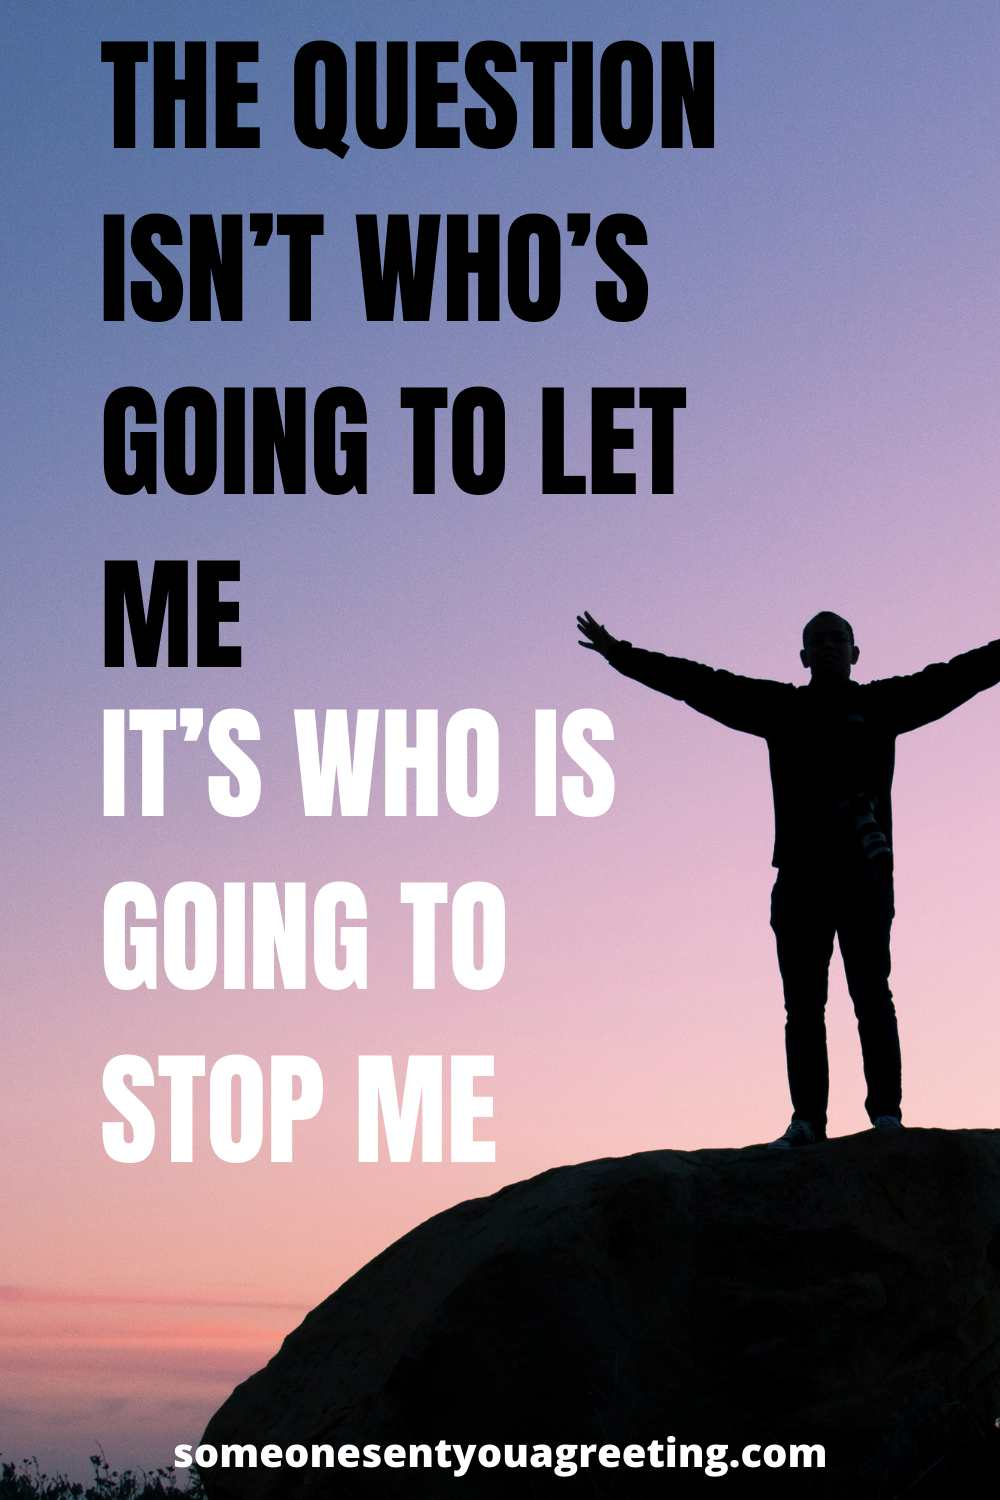 who is going to stop me empower quote